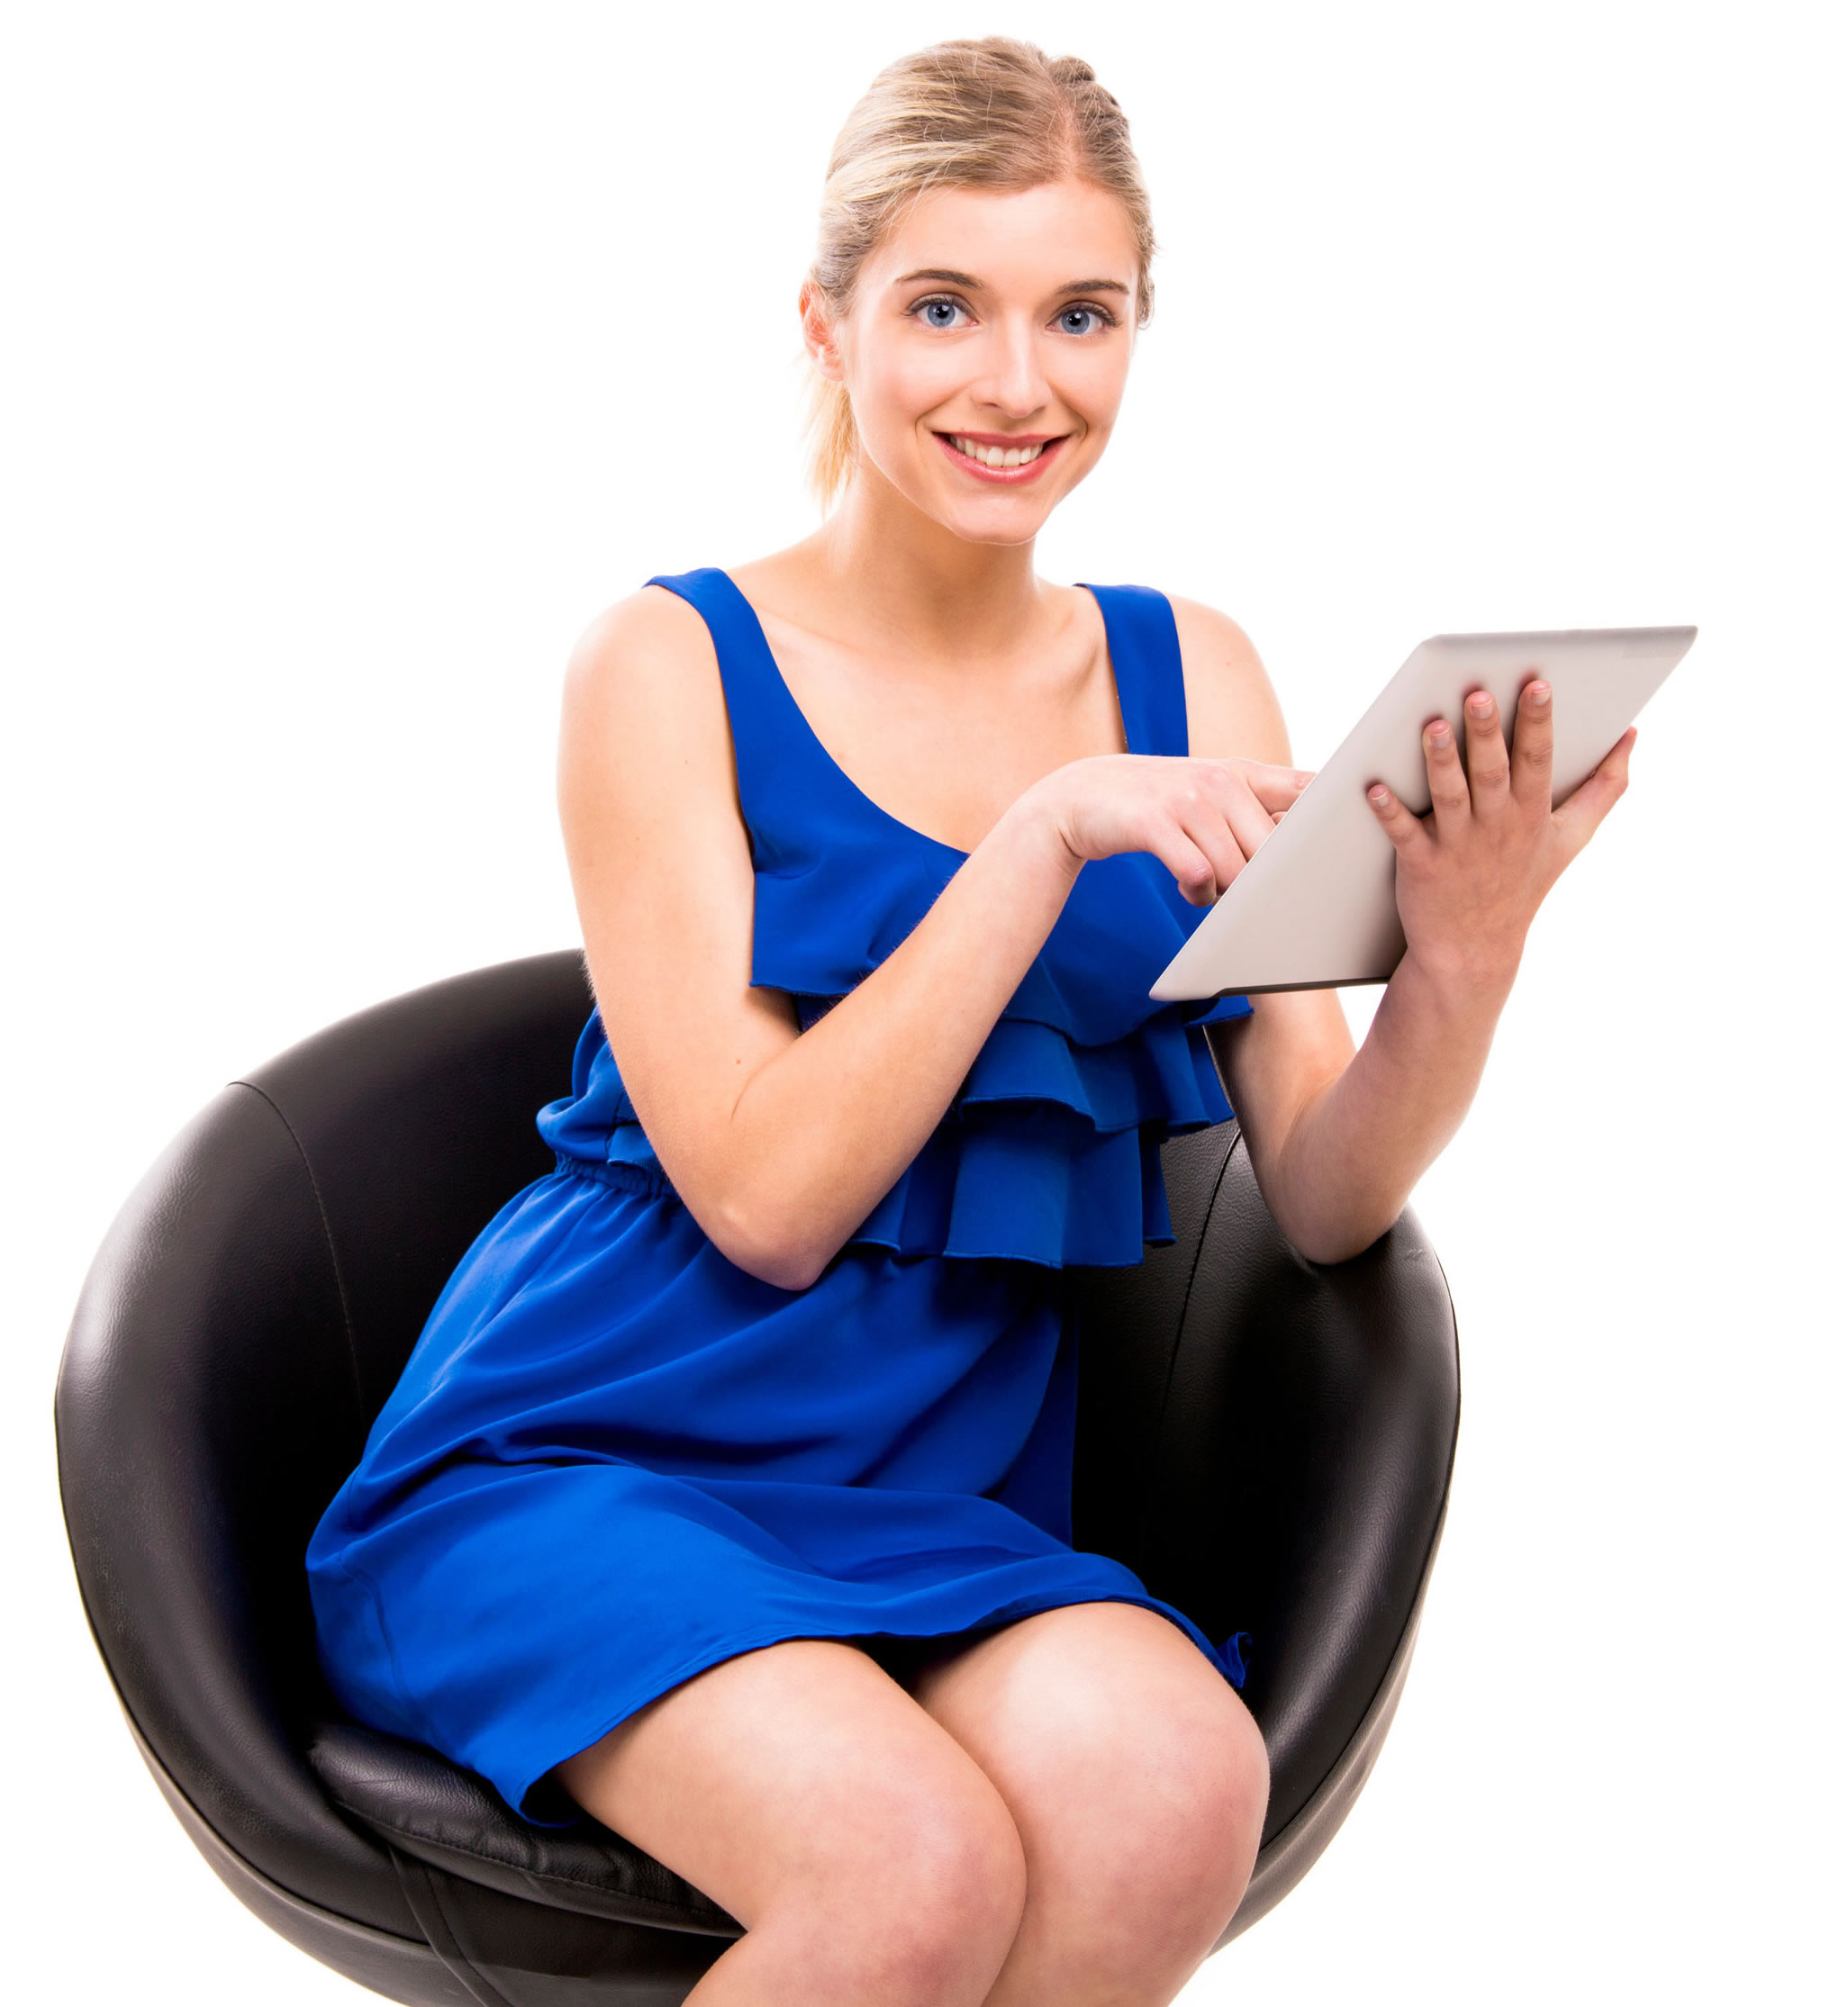 photodune-5460406-woman-working-with-a-tablet-l